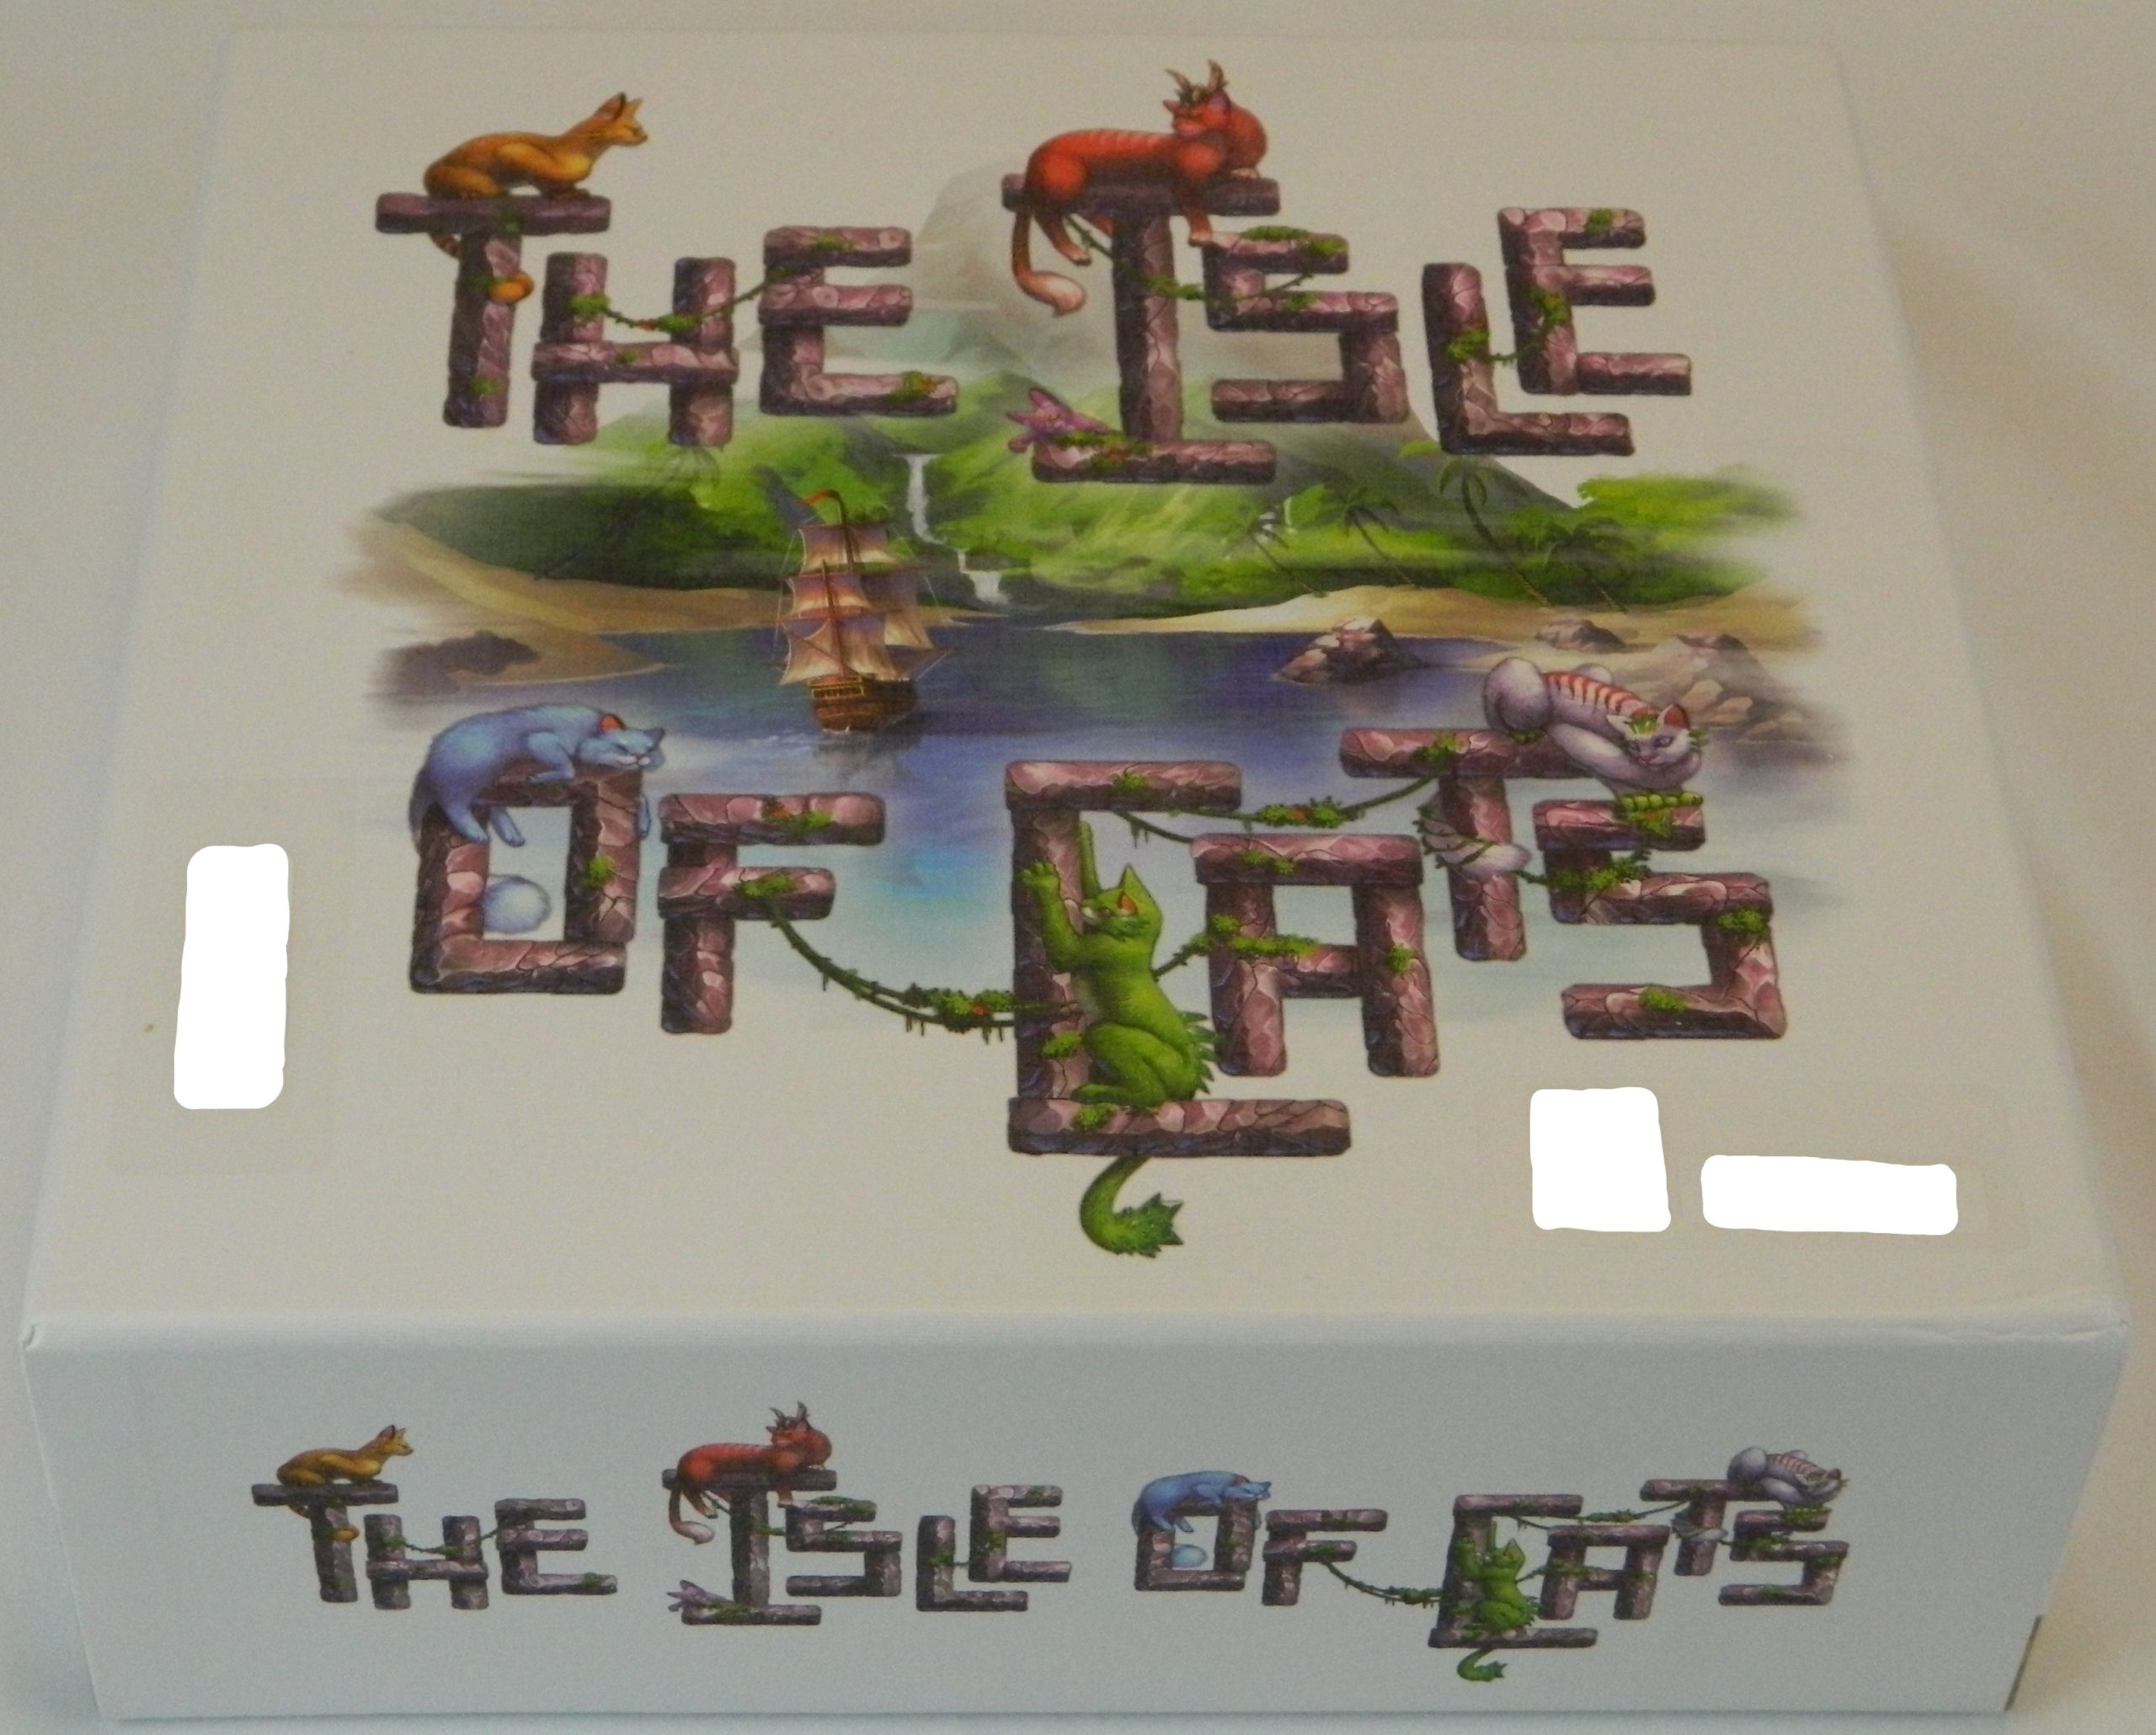 Box for Isle of Cats